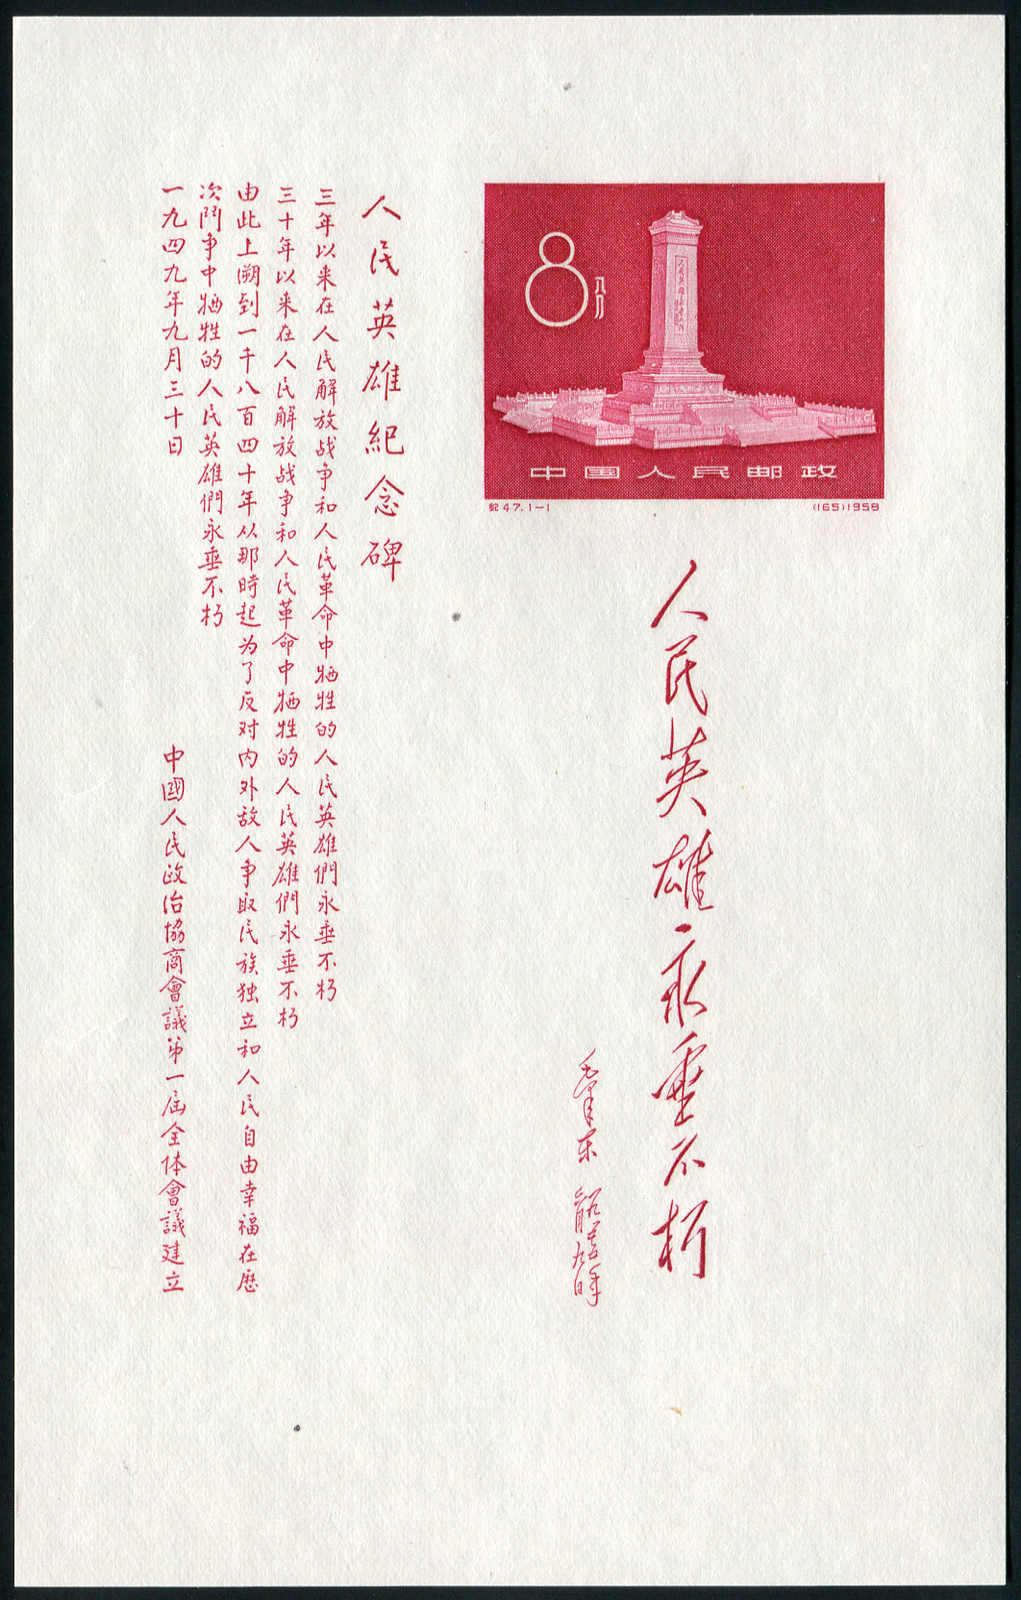 Lot 4249 - Worldwide A-Z People's Republic of China -  Auktionshaus Schlegel 26 Public Auction